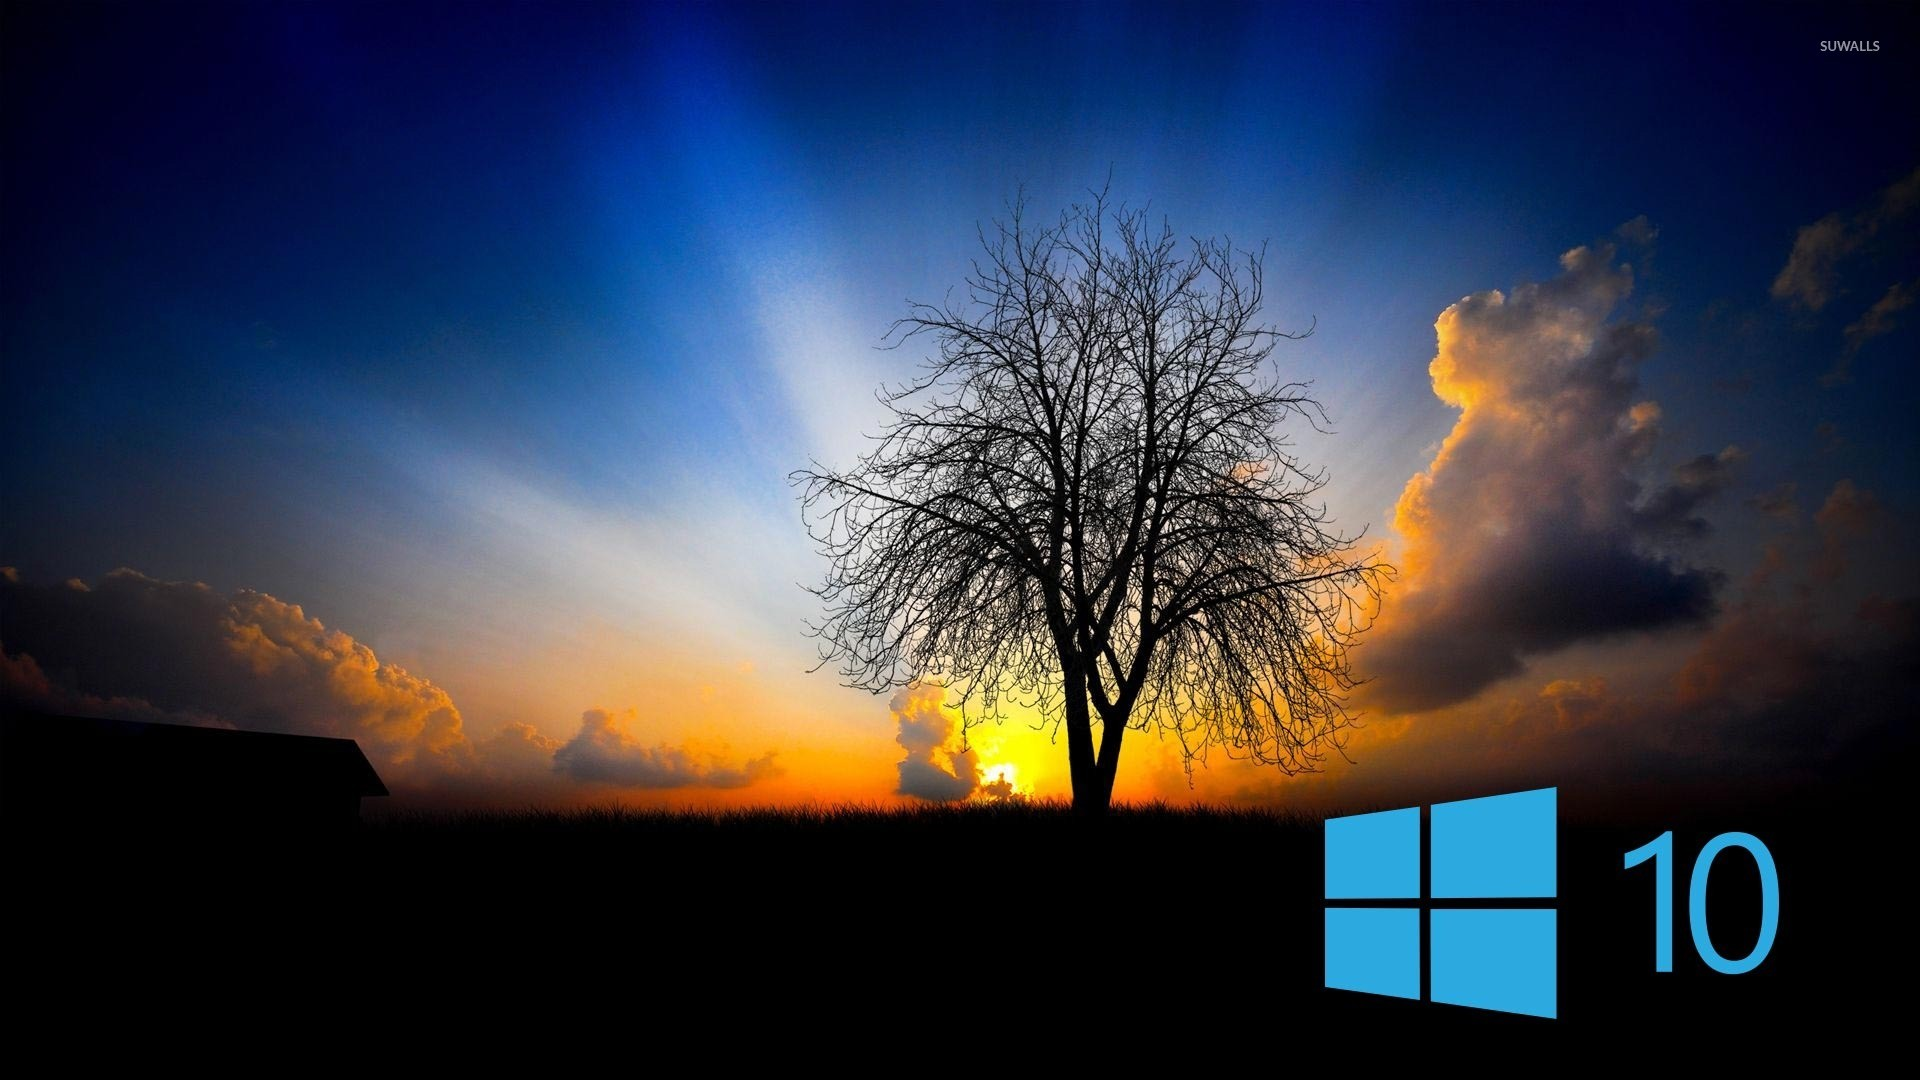 Windows 10 Wallpapers 1920x1080 74 Images